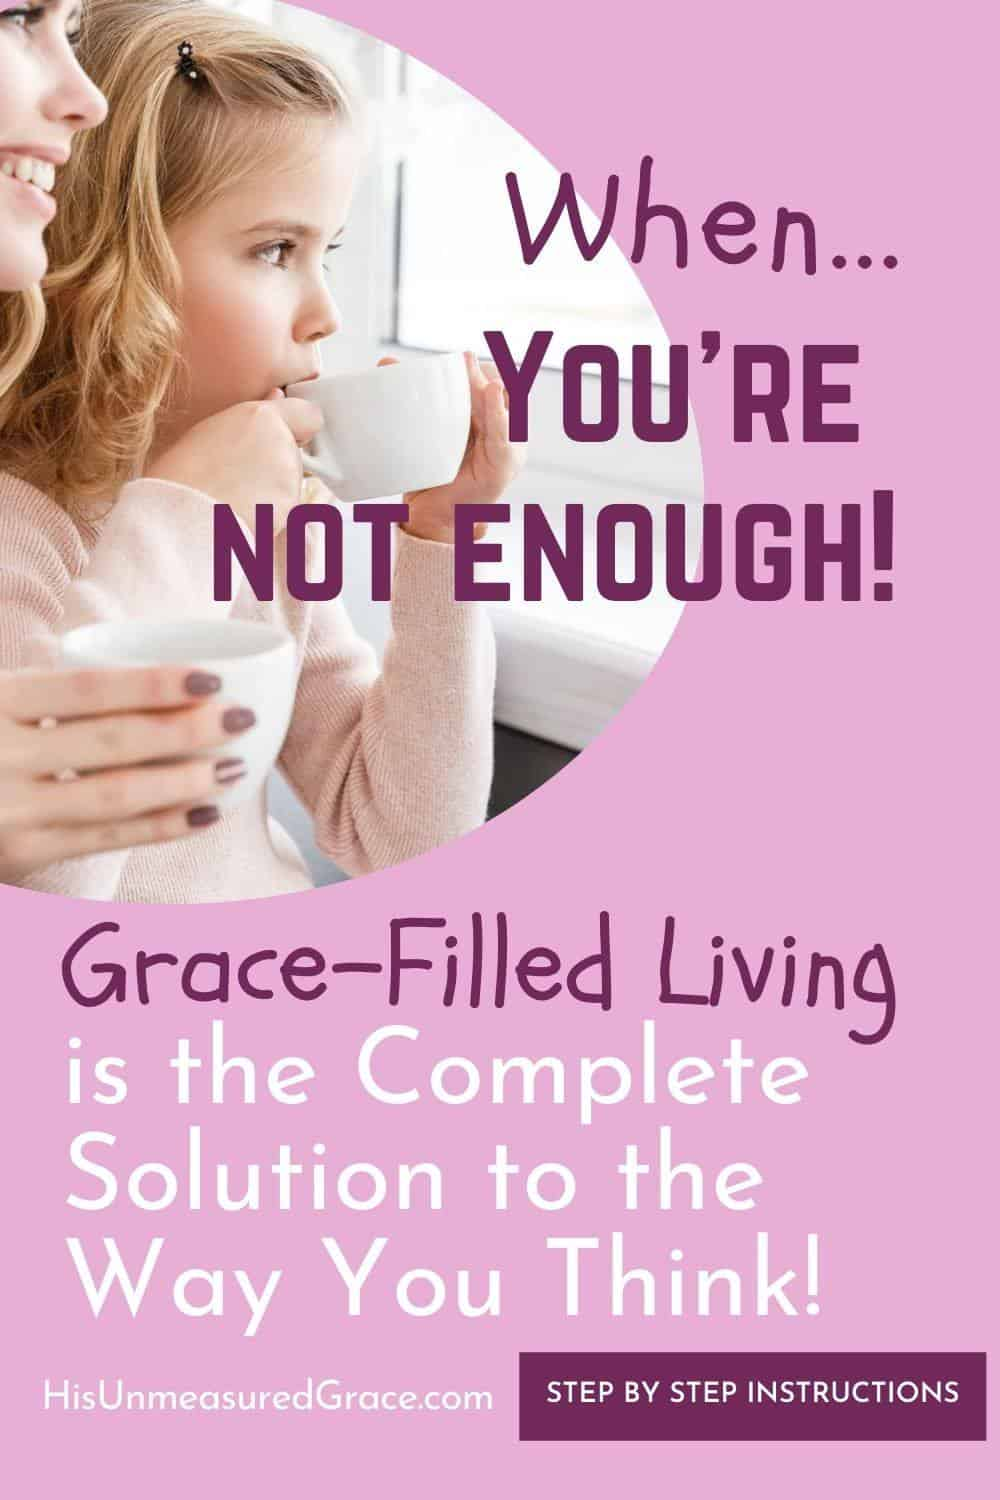 Grace-Filled Living is the Complete Solution to the Way You Think